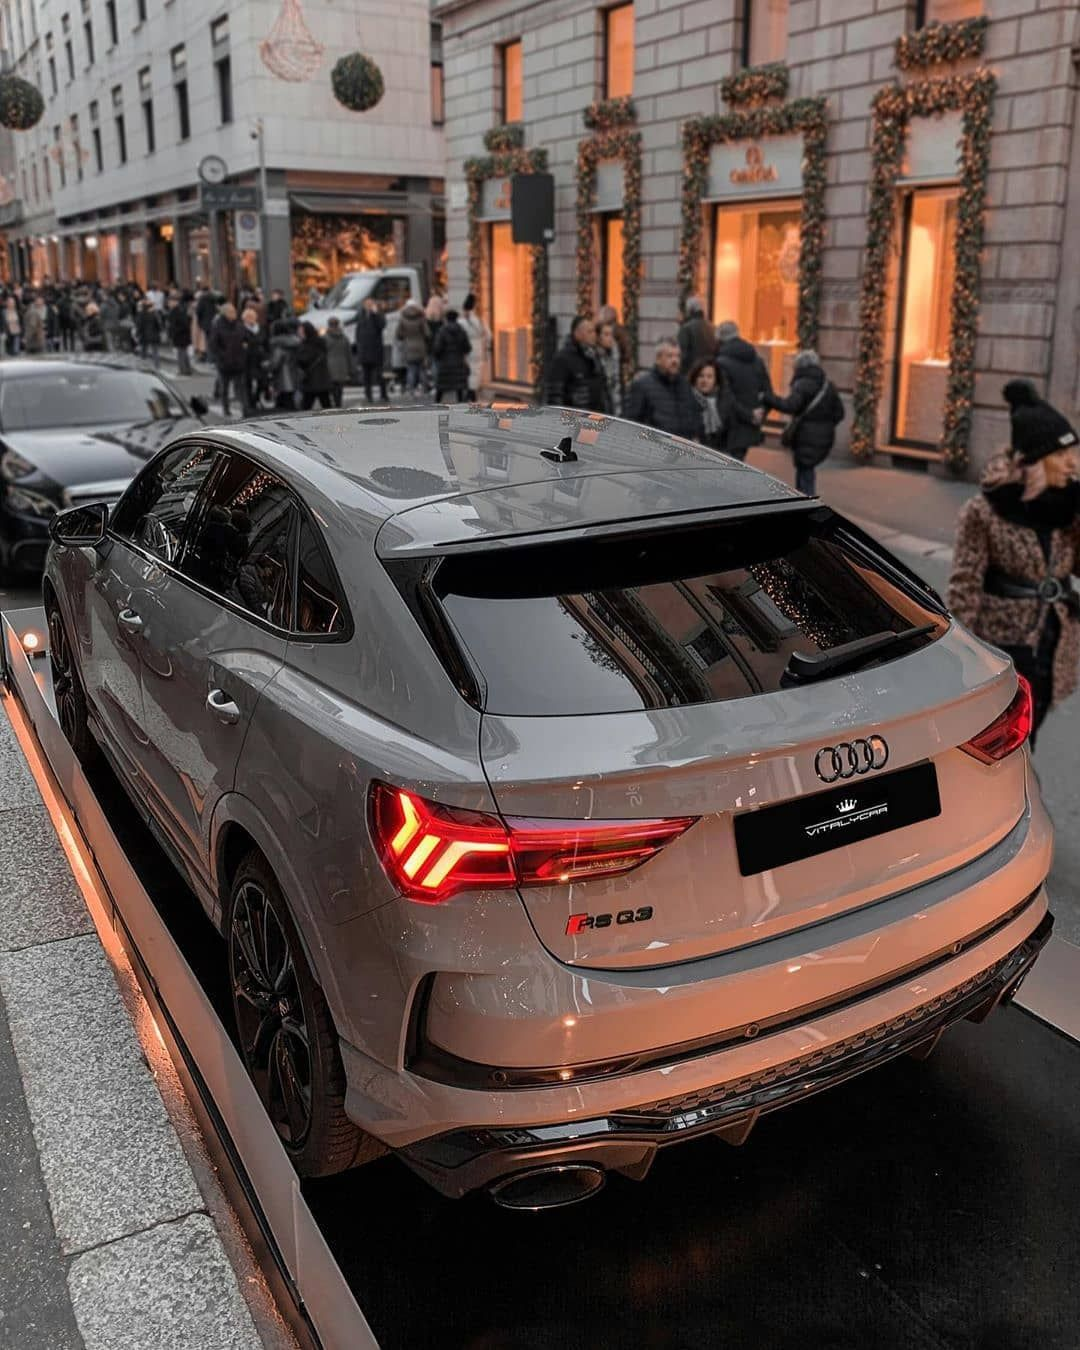 Wow I Love This Rsq3 Spec Rate This Audi From 1 100 Use Code Audilover For 10 Off Carbon Fiber Mirrors Custom Steeri In 2020 Audi New Luxury Cars Black Audi